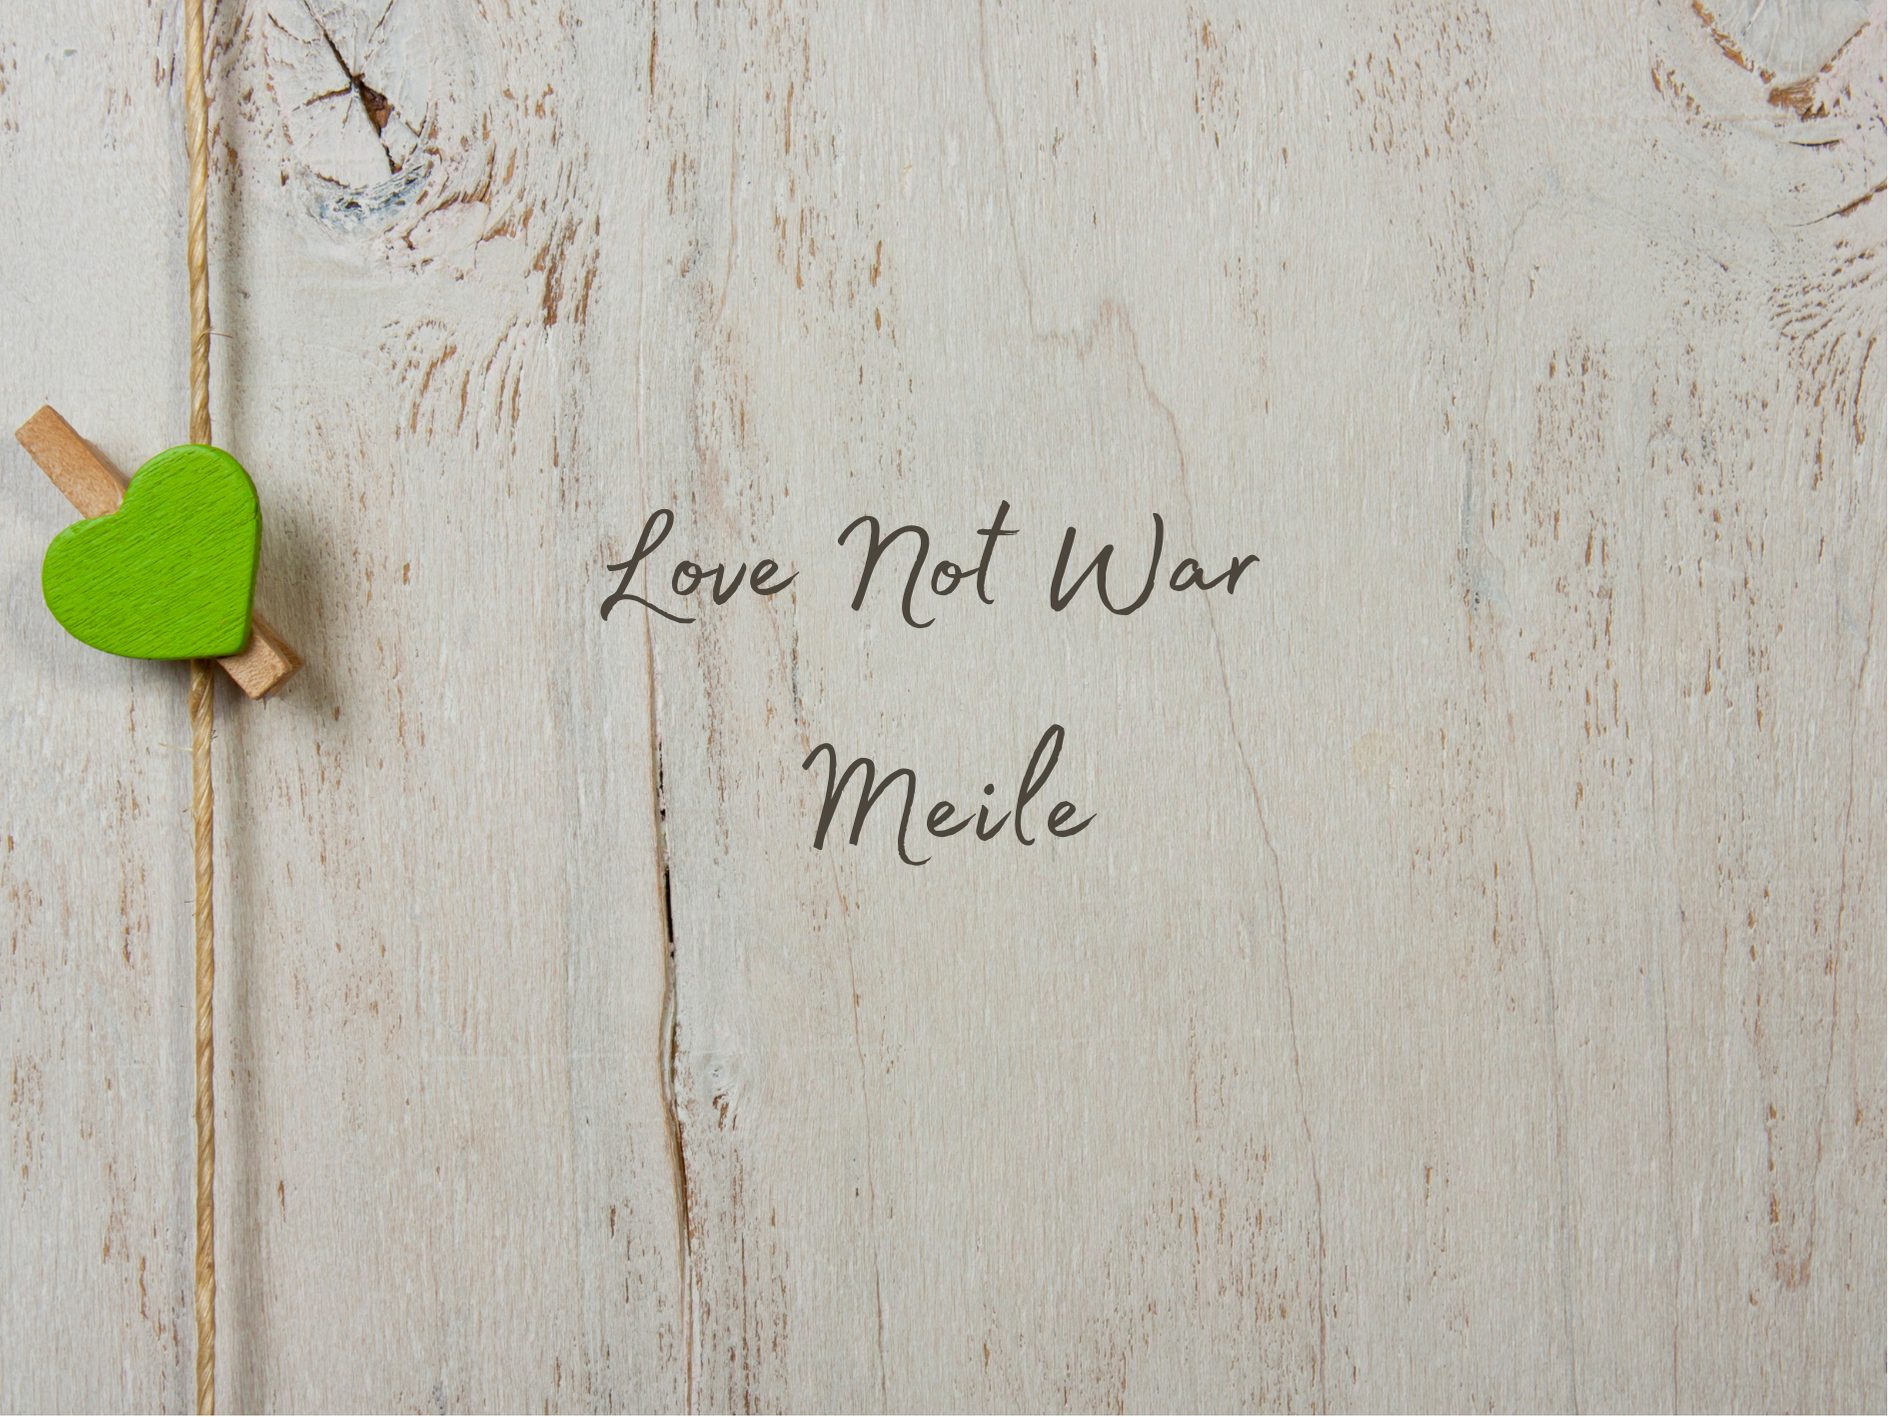 [Toy Review] Lovehoney Love Not War Meile